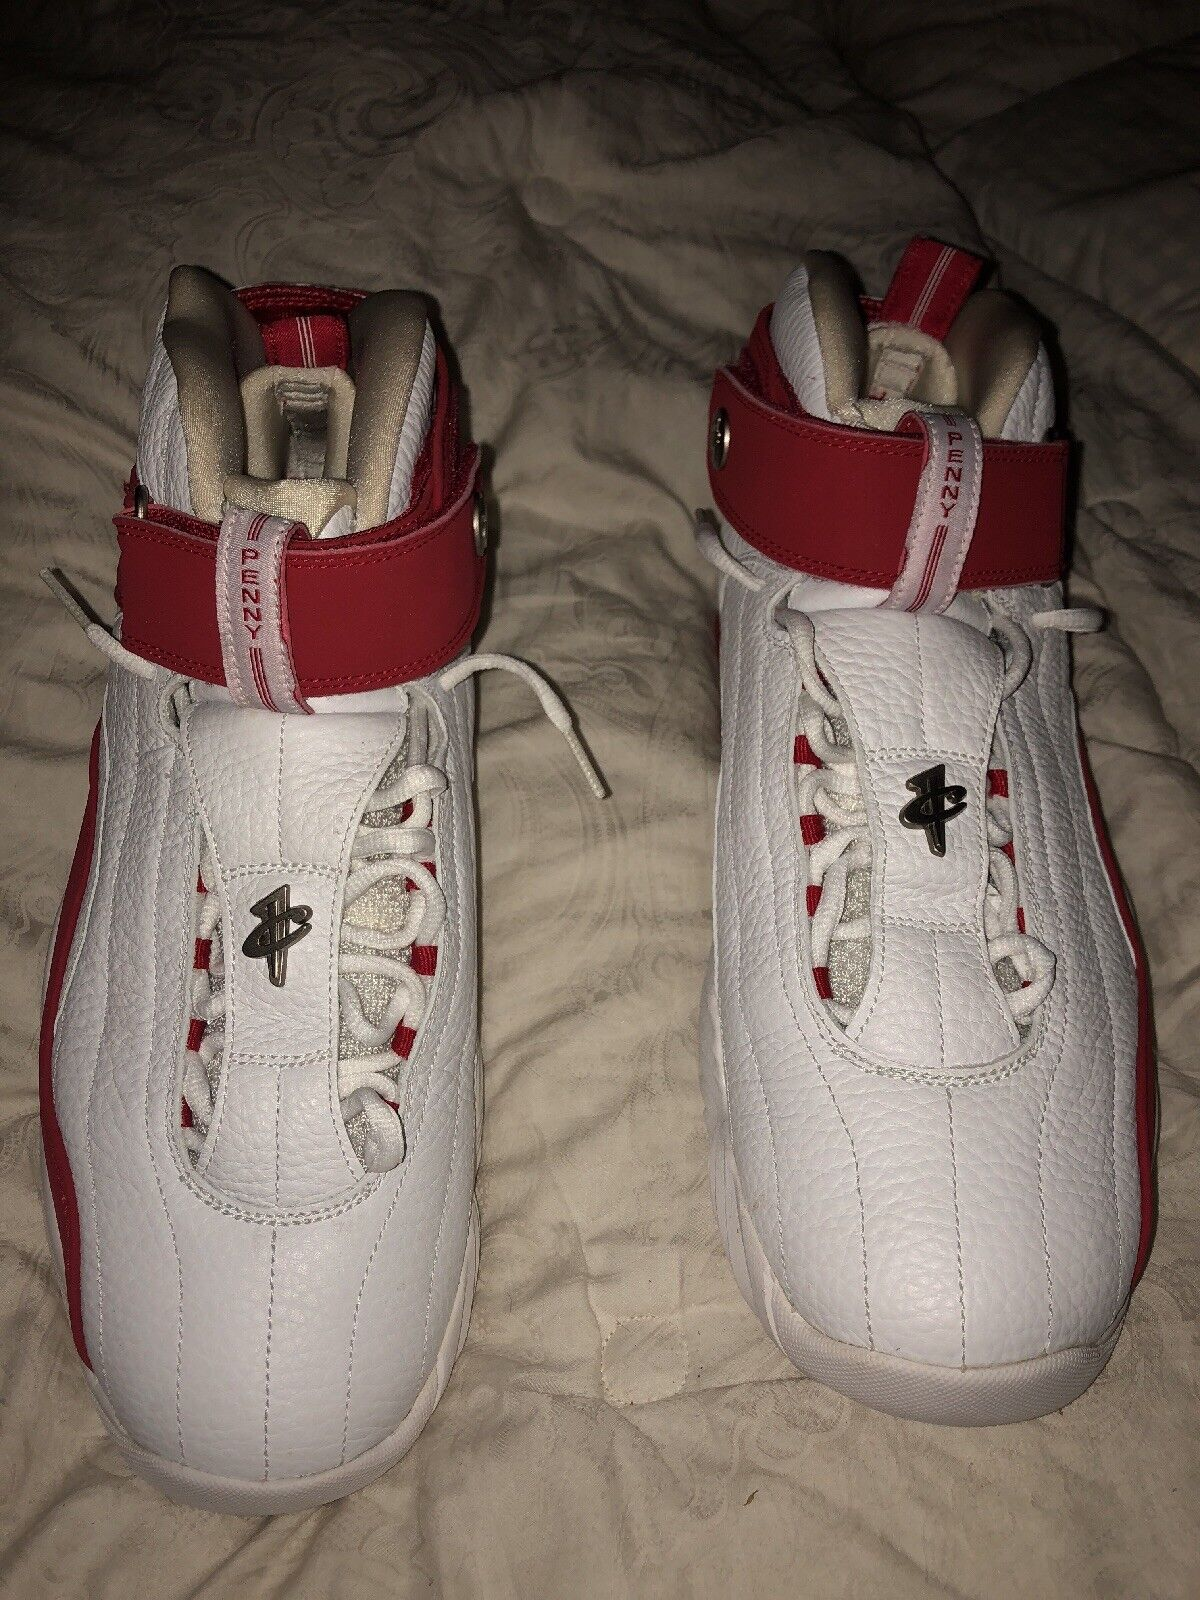 Air Max Penny Iv Nike white red size 11.5 us 45.5 eu authentic zoom air